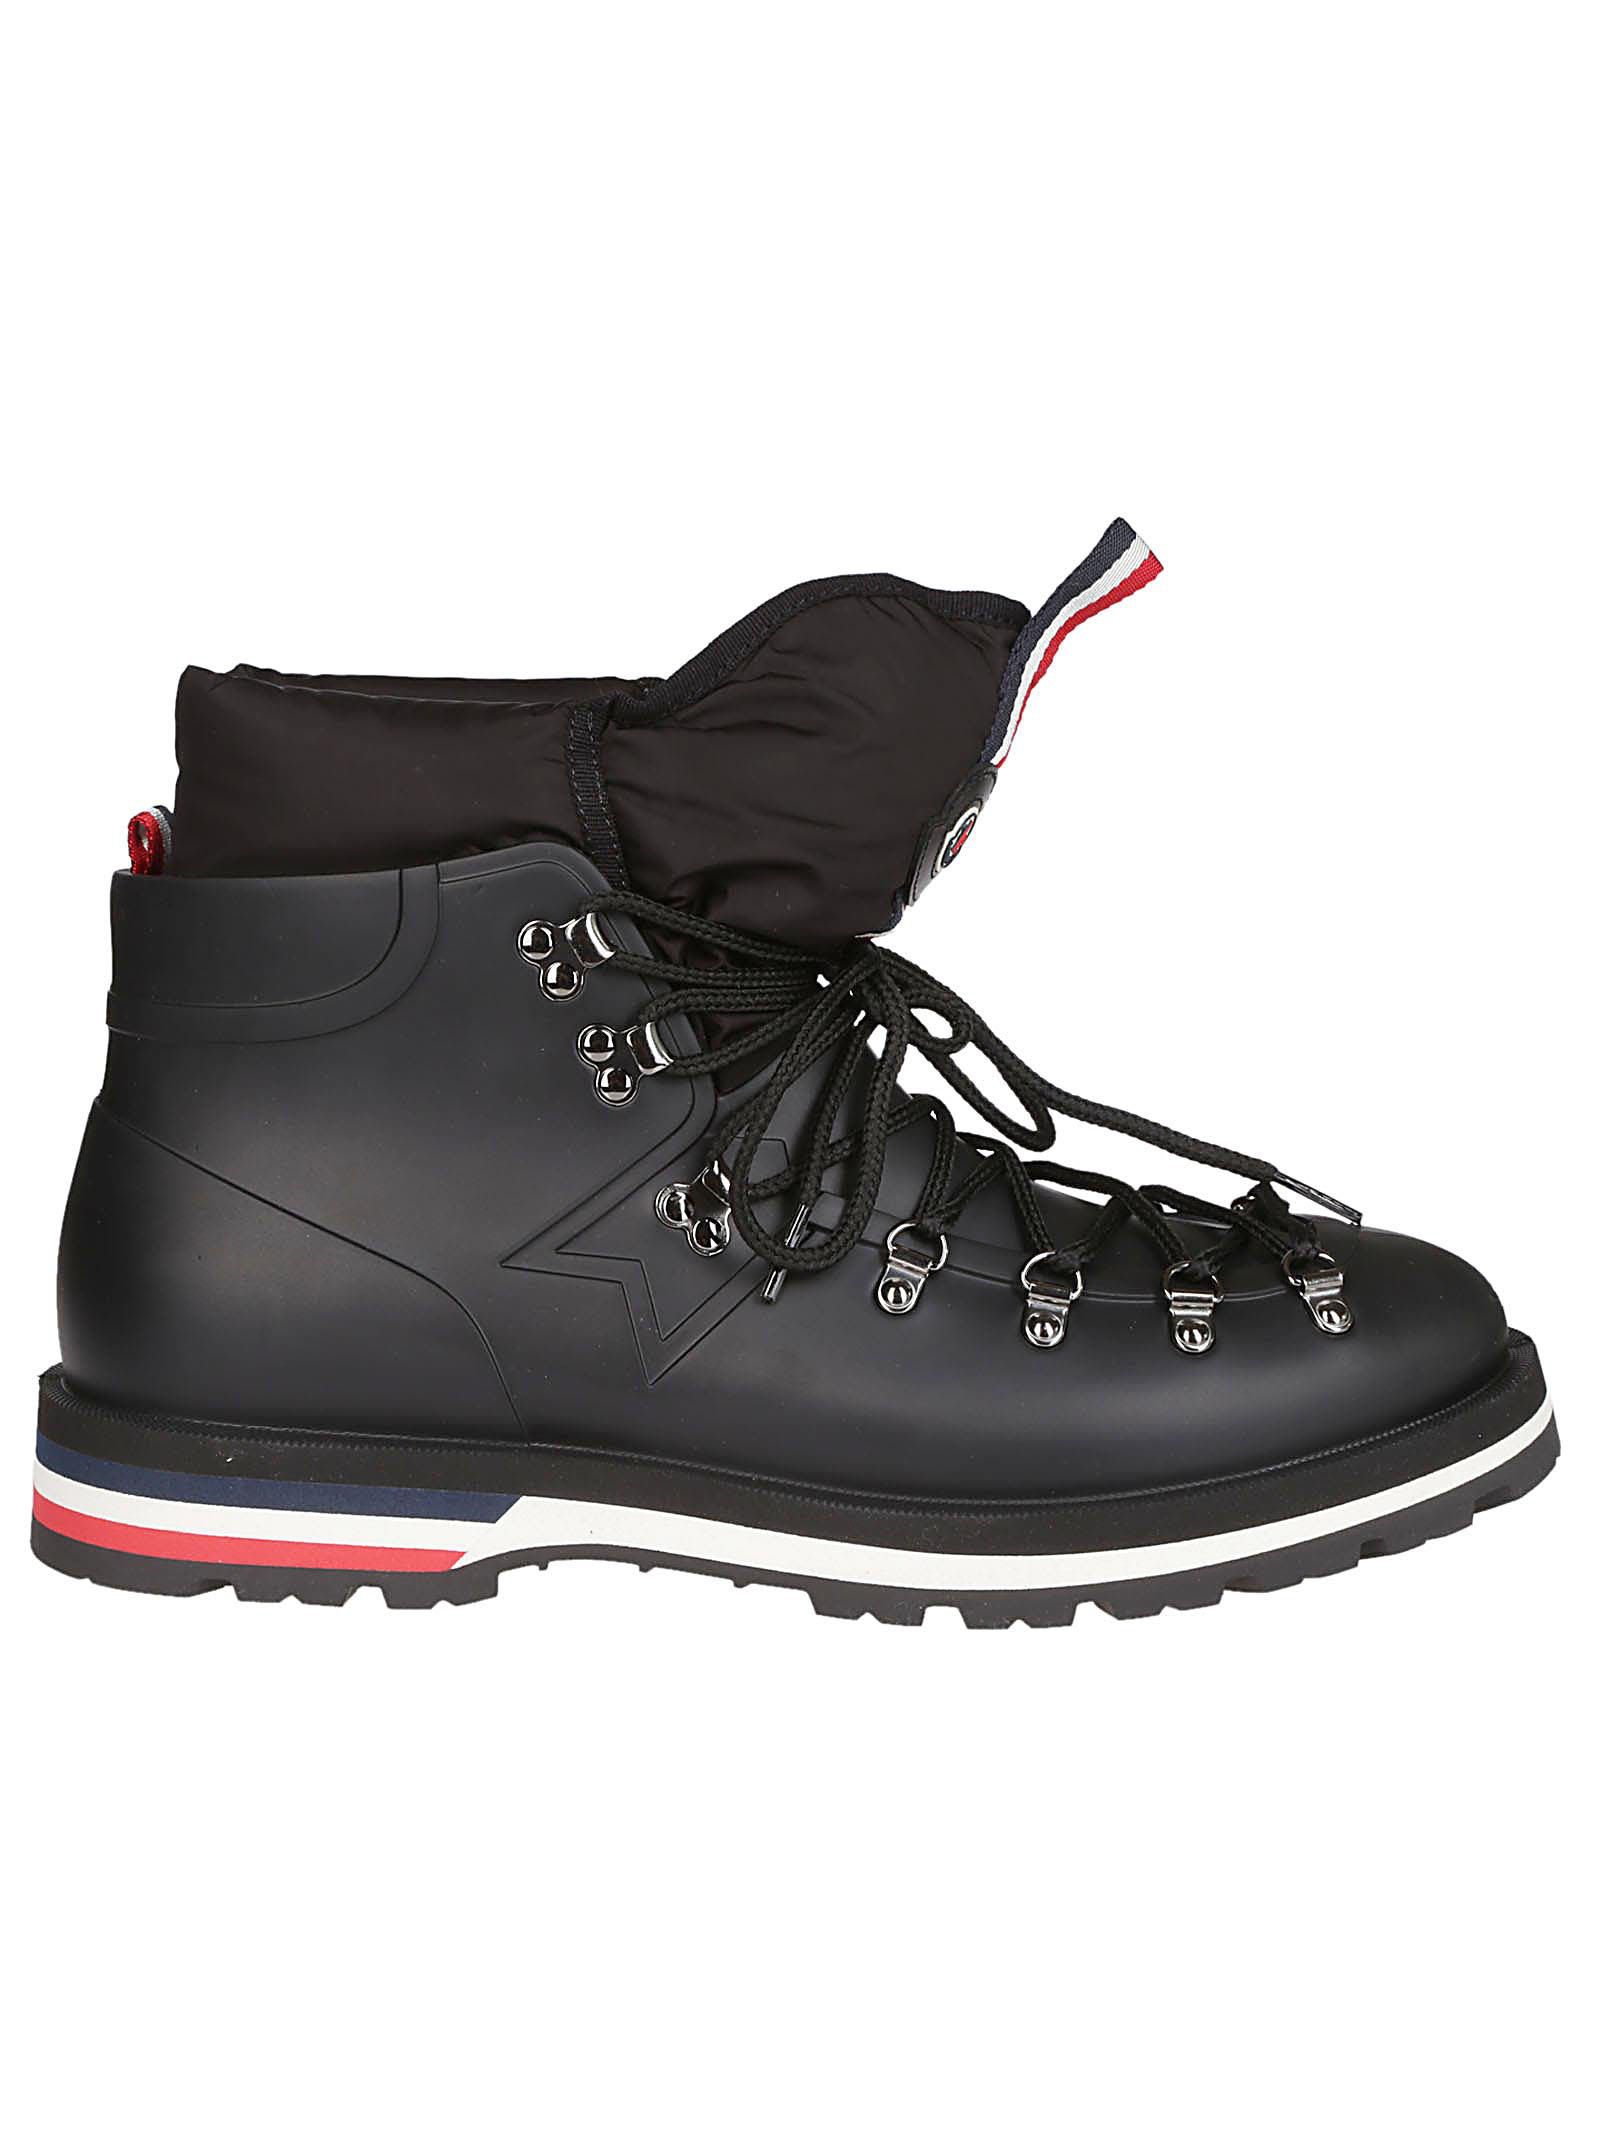 145bfc915391 Moncler Combat Sports Boots In Black